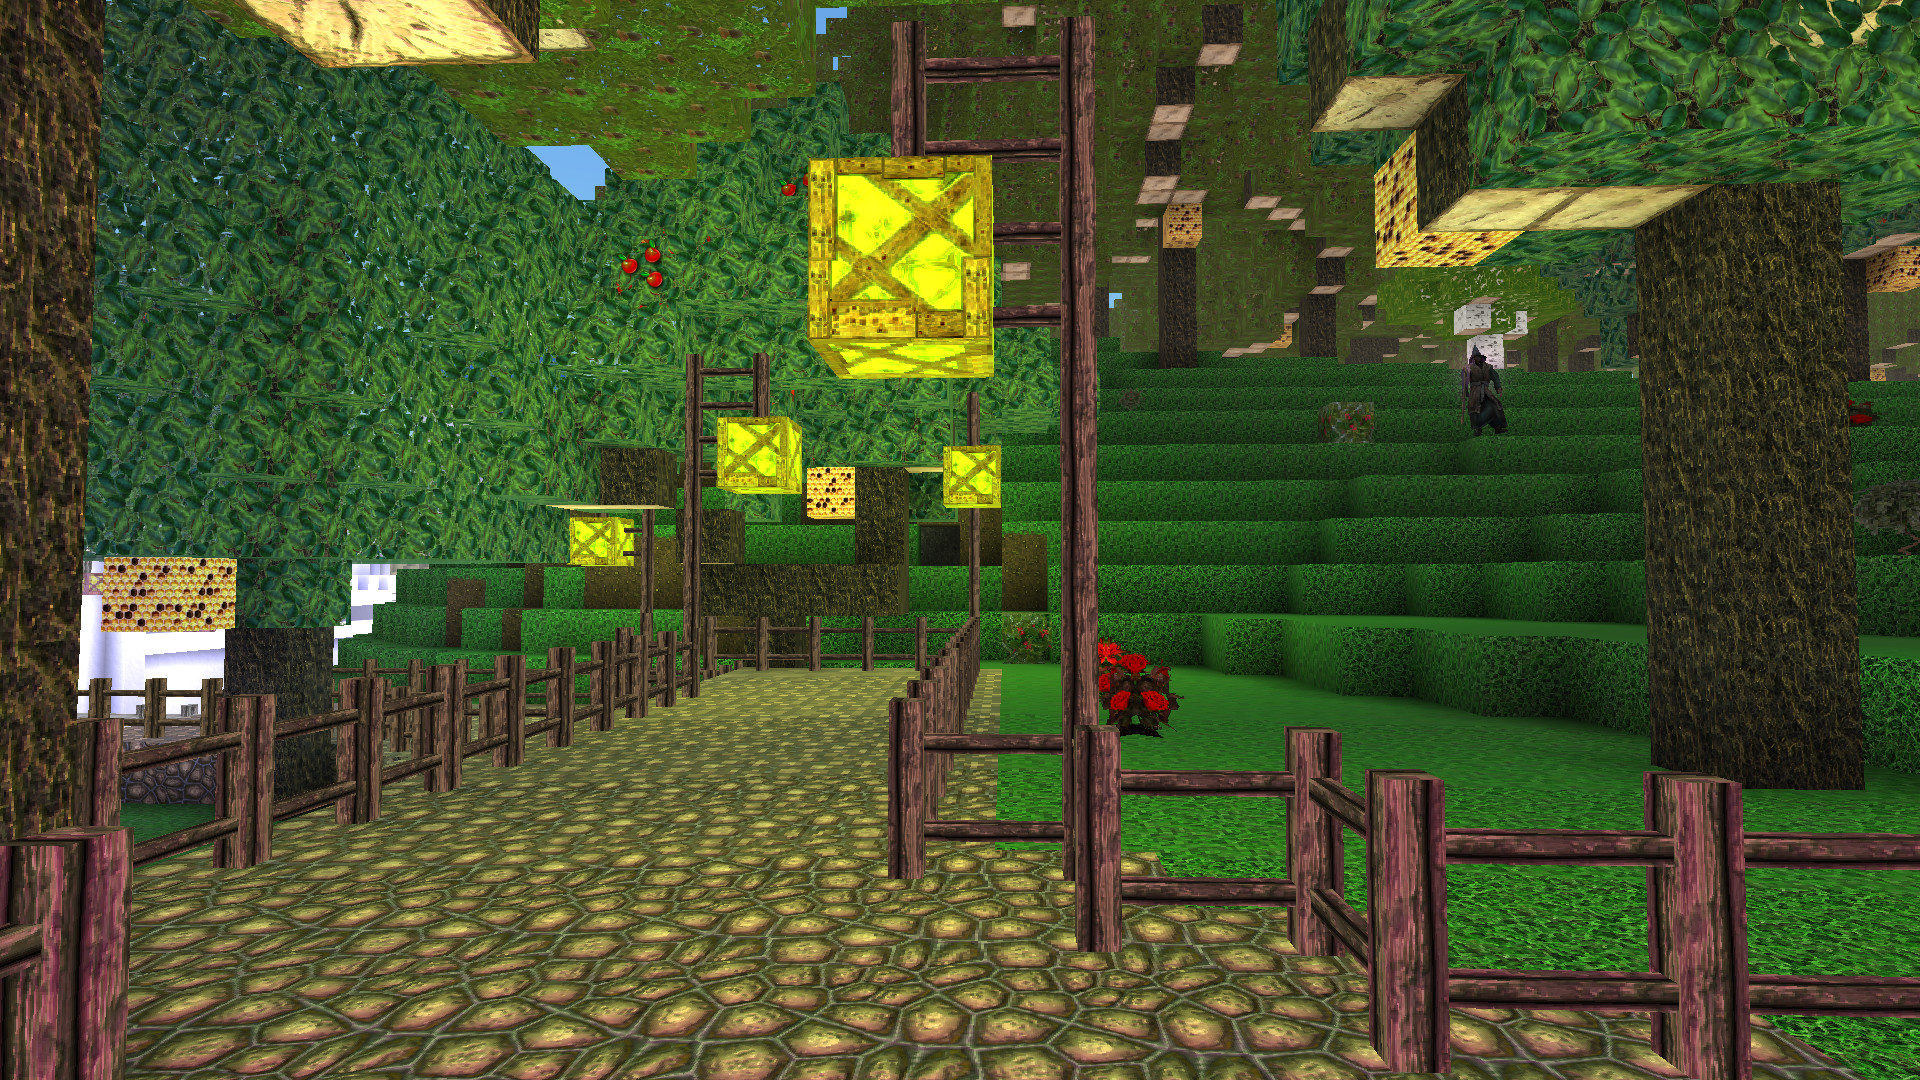 Download block story game for pc for free (Windows)